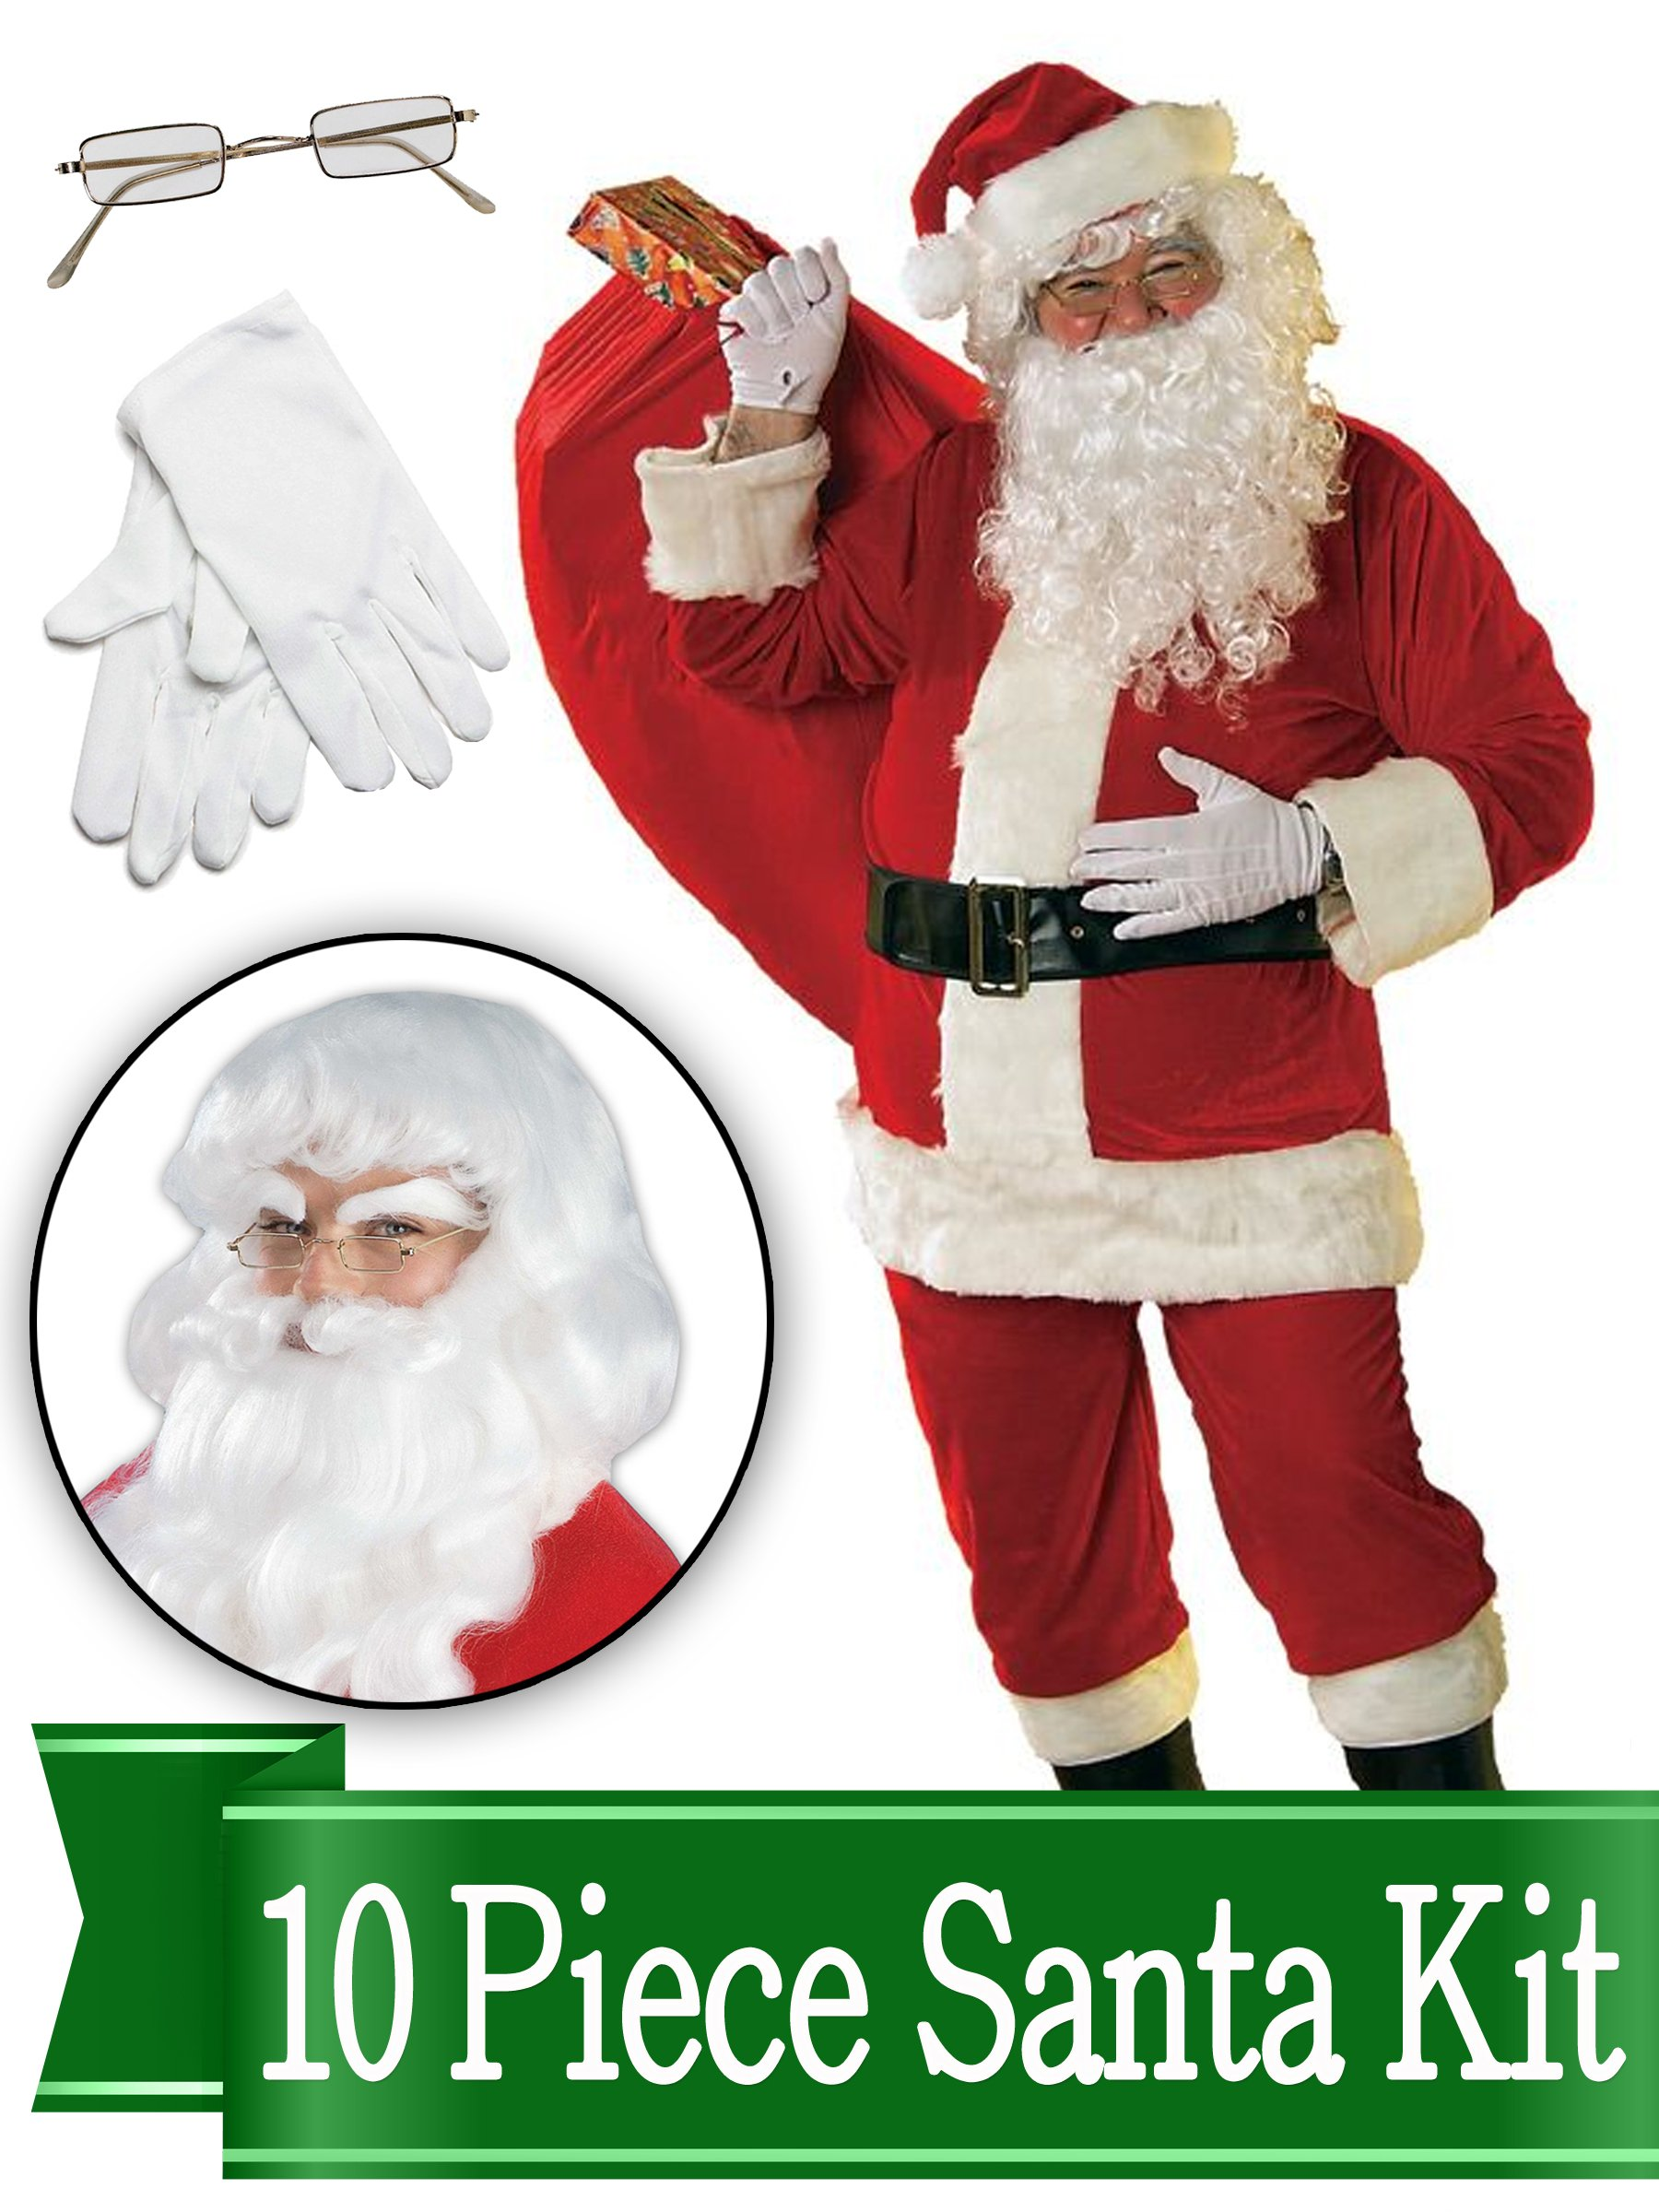 Santa Outfit – Red Ultra Velvet Deluxe - Santa Suit Costume - Complete 10 Piece Kit by BirthdayExpress